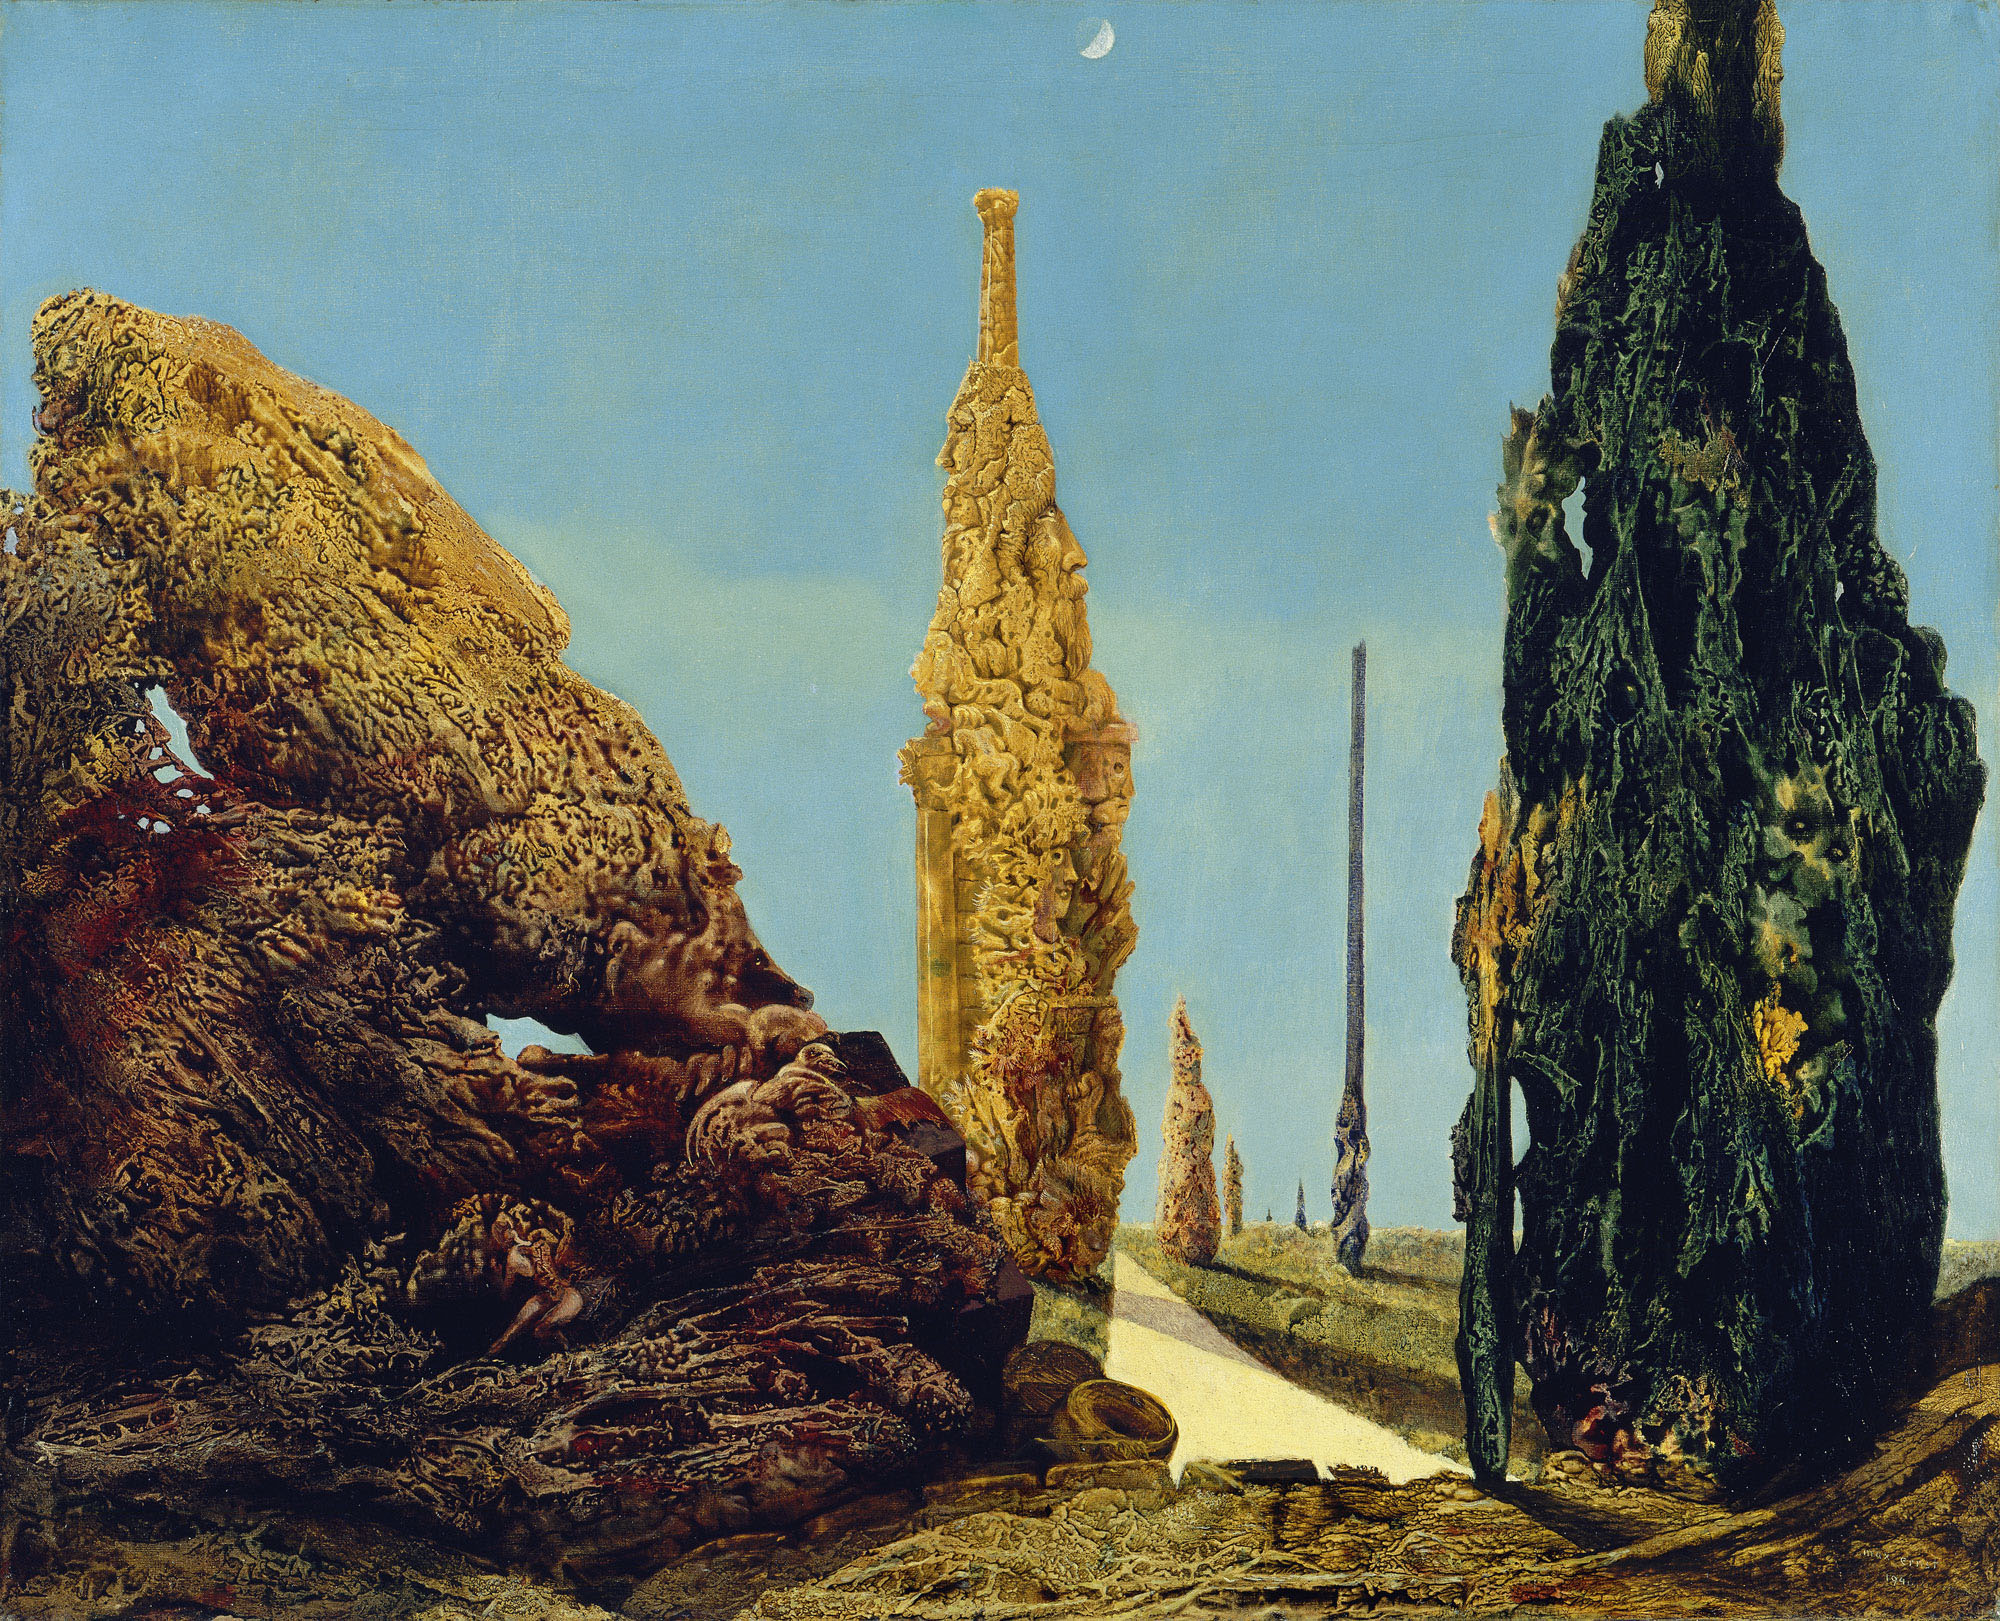 Max ERNST, Arbre solitaire et arbres conjugaux, art, insight, coaching, vocation